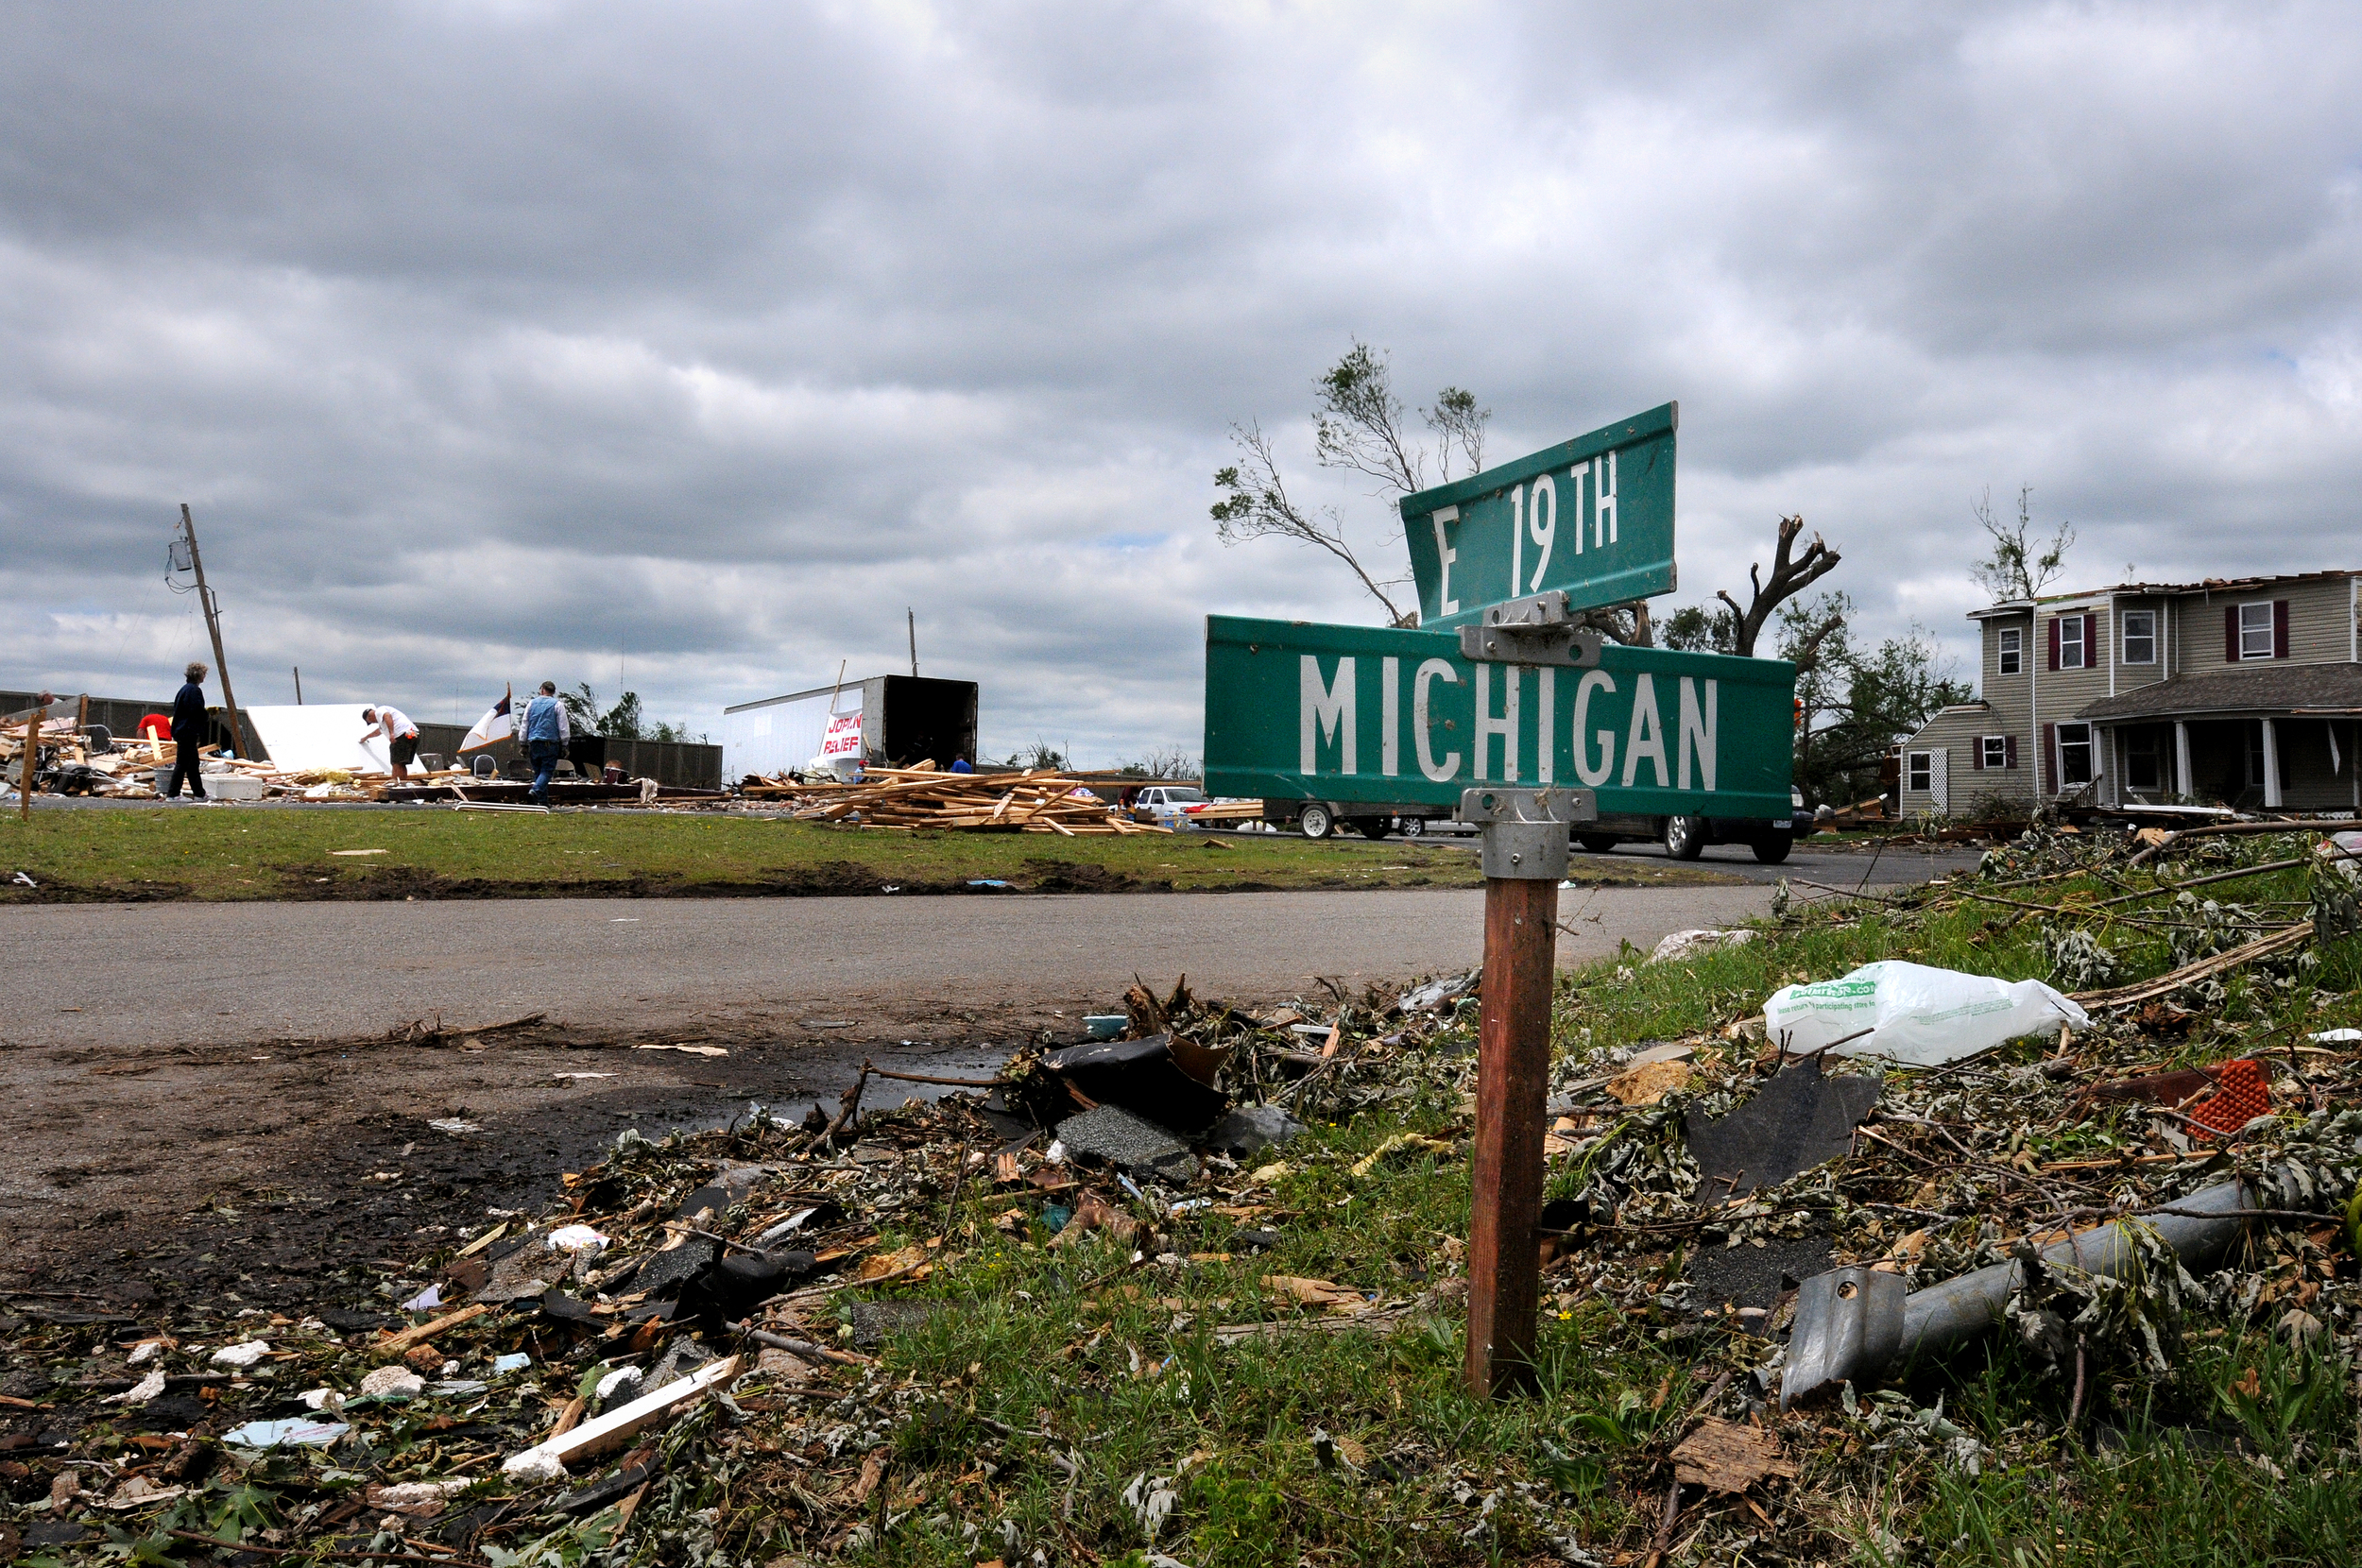 A Joplin, Mo. street sign is stuck in the ground to help identify the location after an E5 tornado destroyed most buildings, streets and signs that indicated locations.